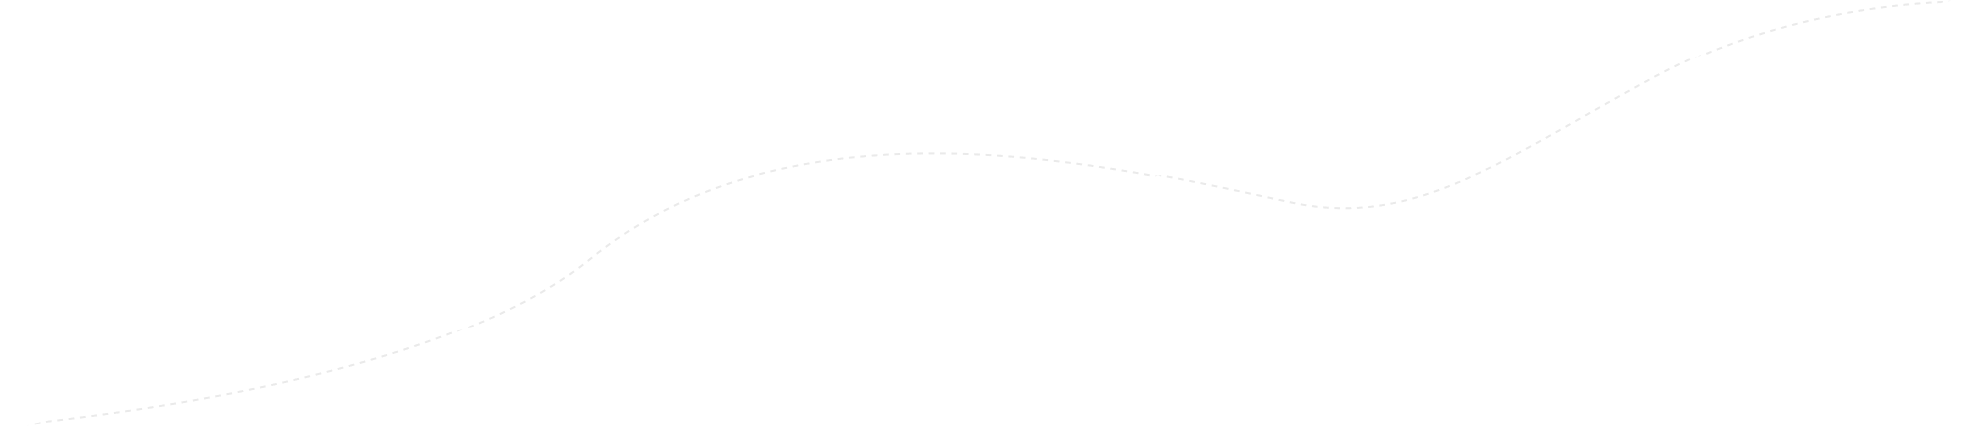 Dotted ascending line